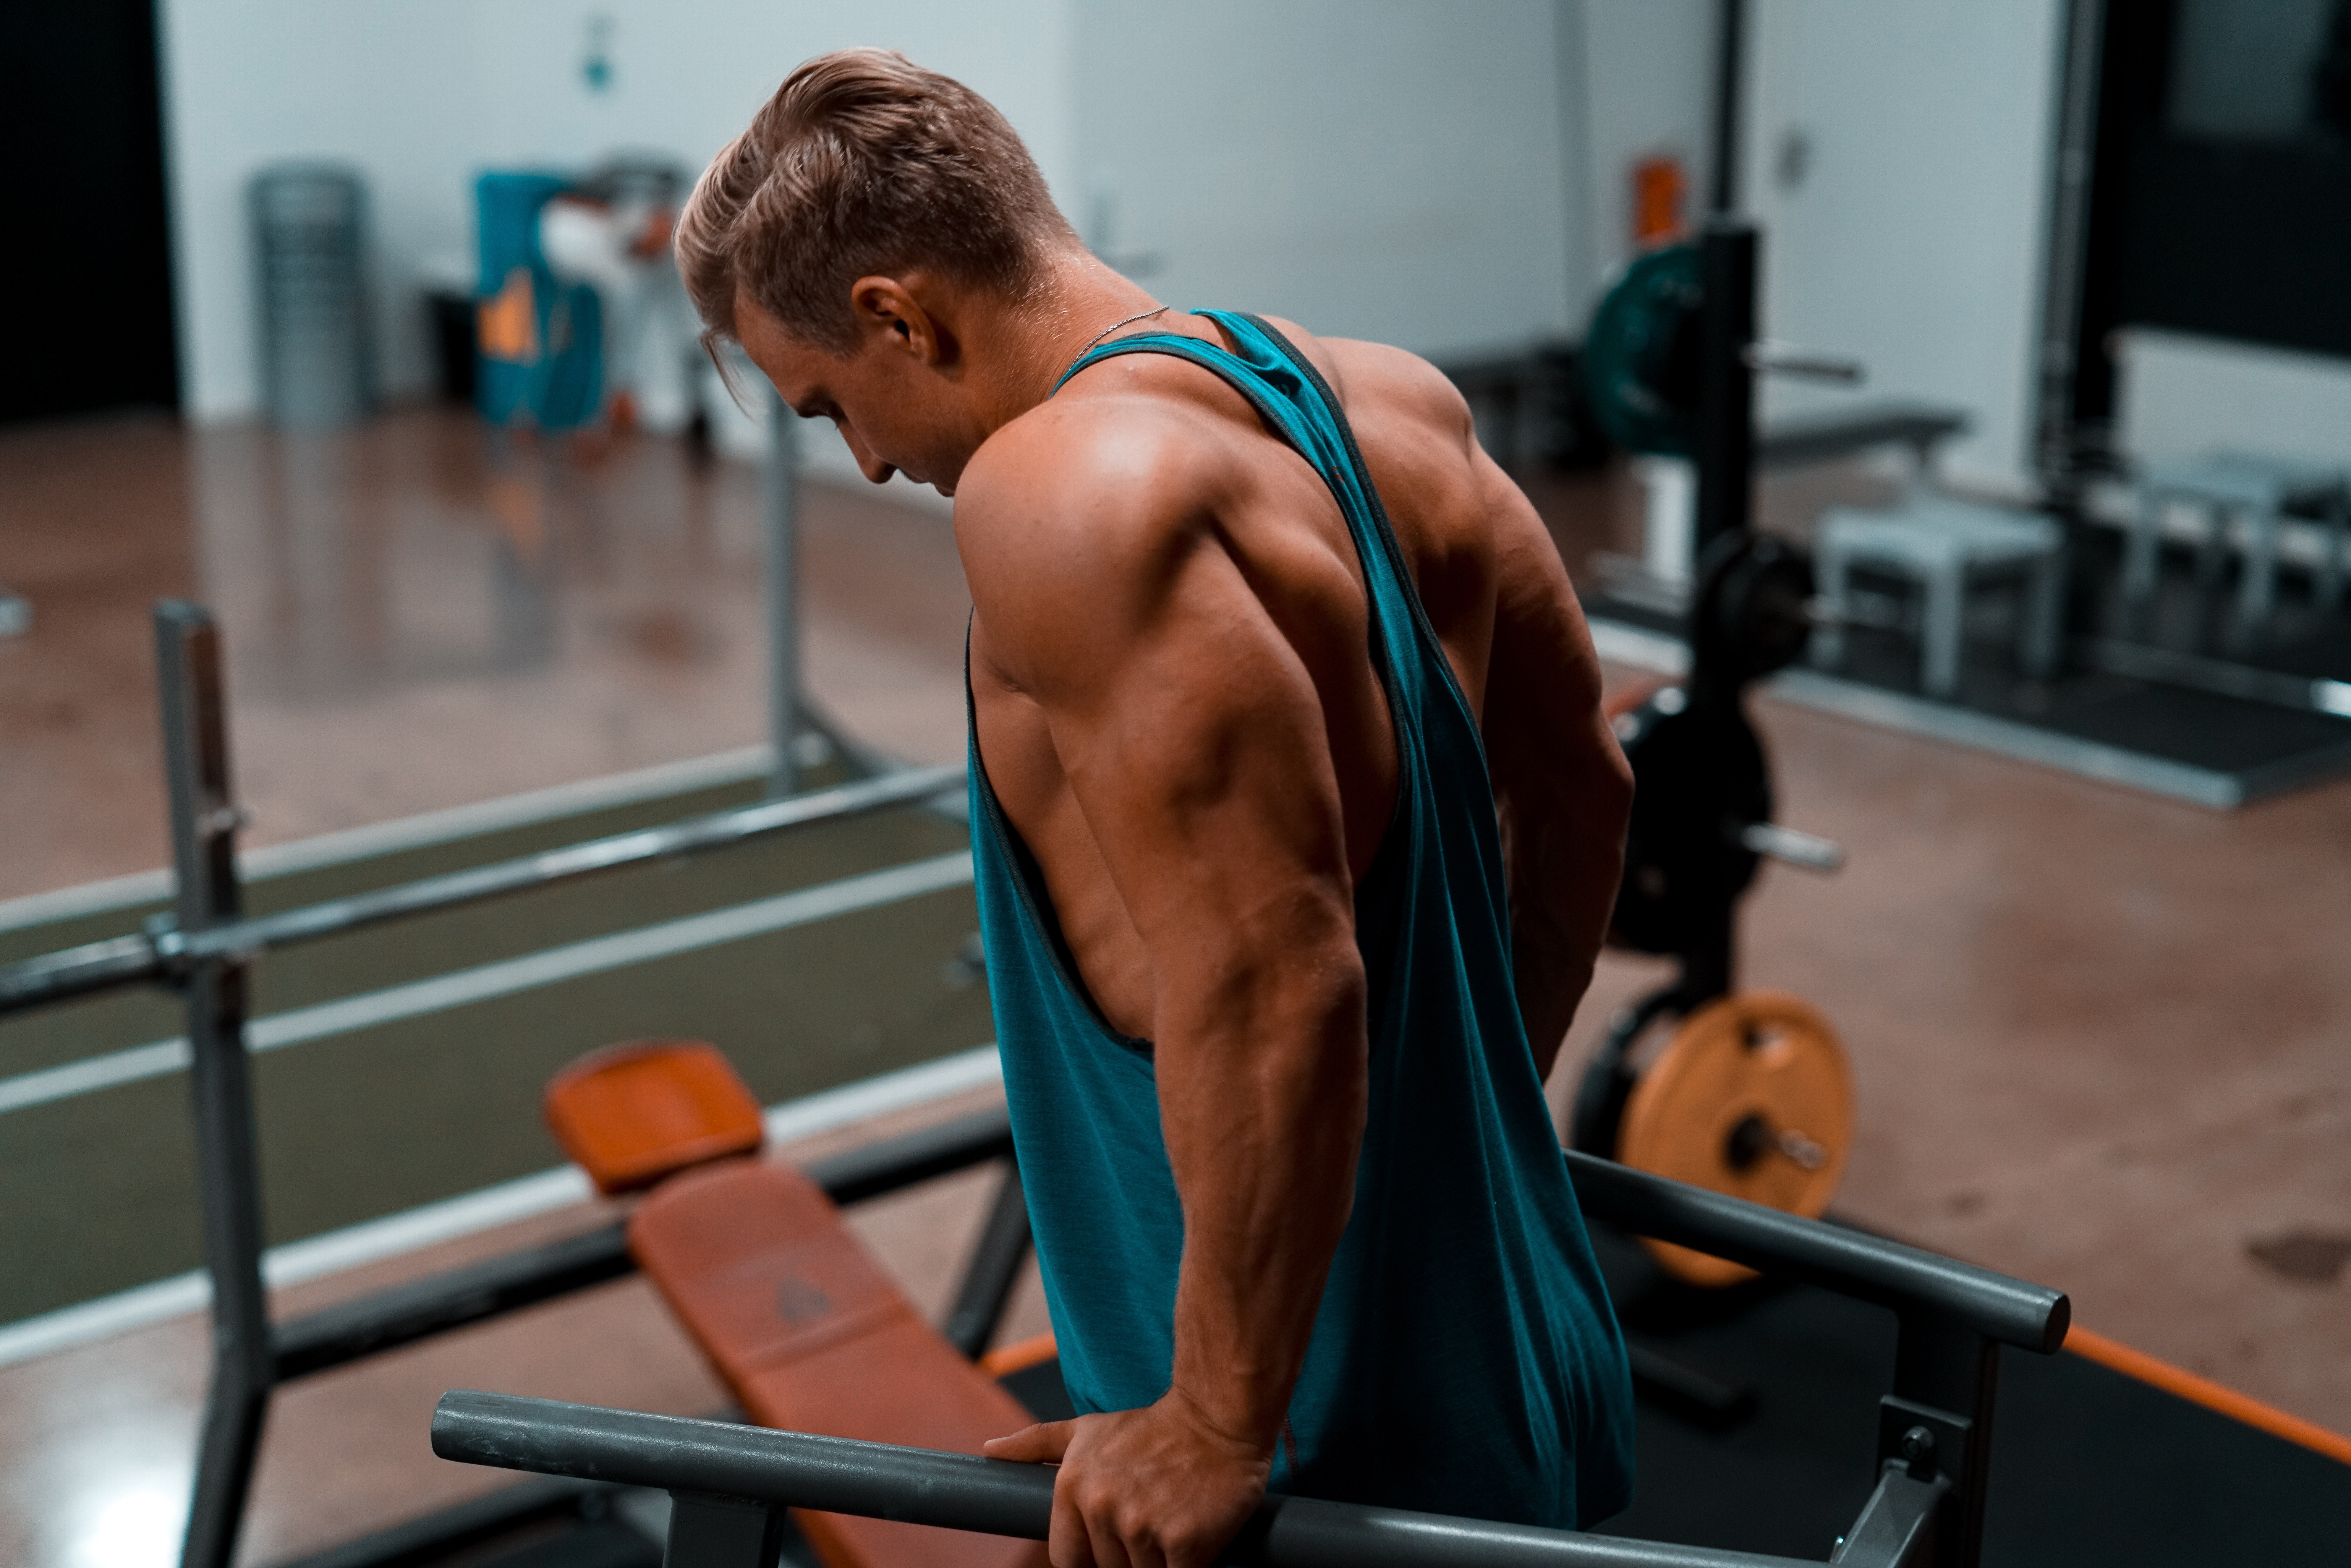 How to Gain Muscle Mass After 40 as a Hard Gainer - Men Over